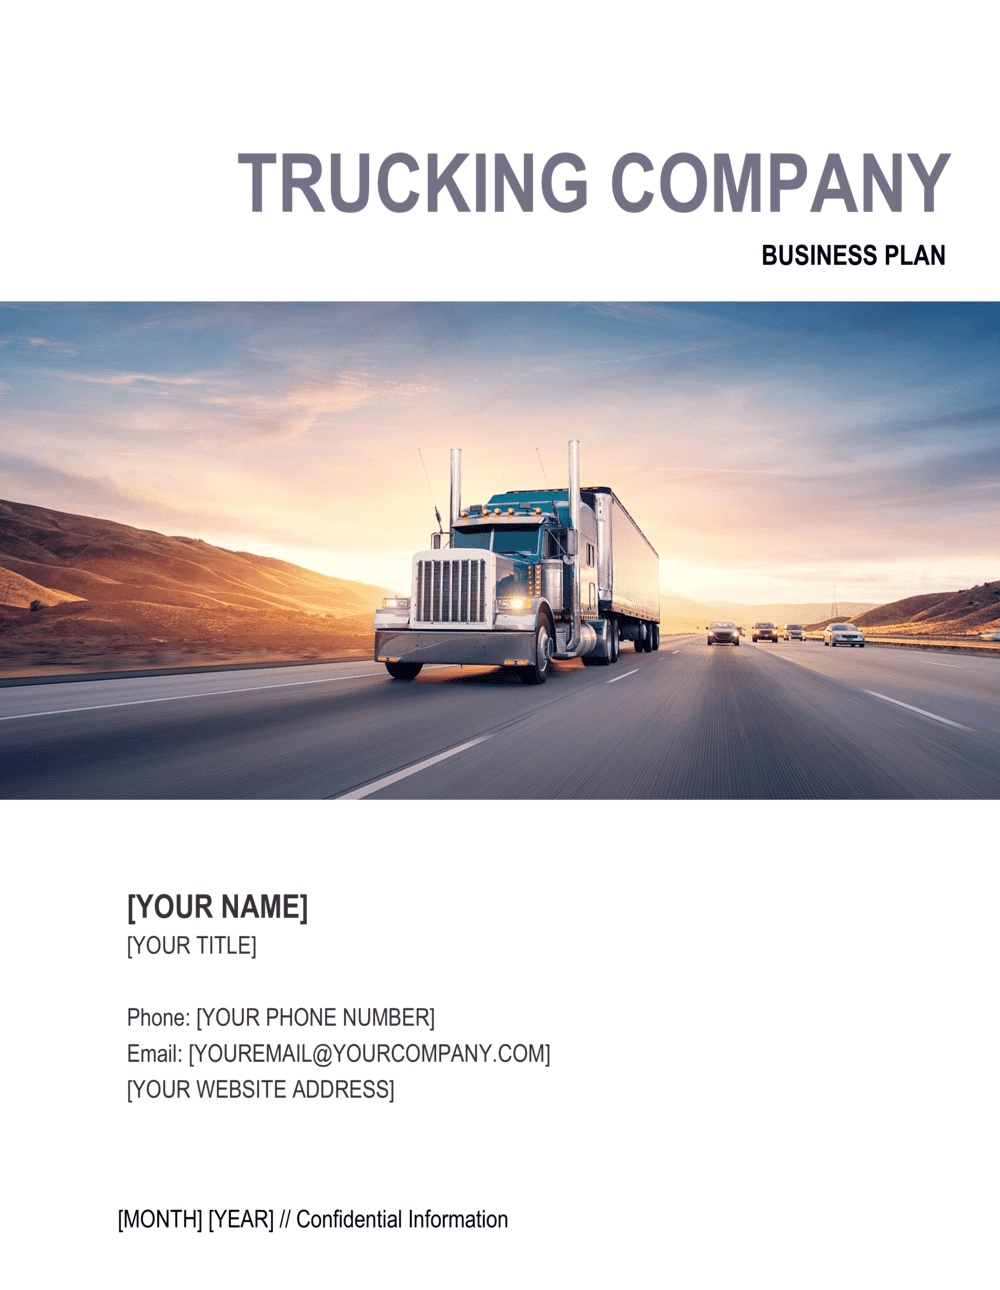 Business-in-a-Box's Trucking Company Business Plan Template